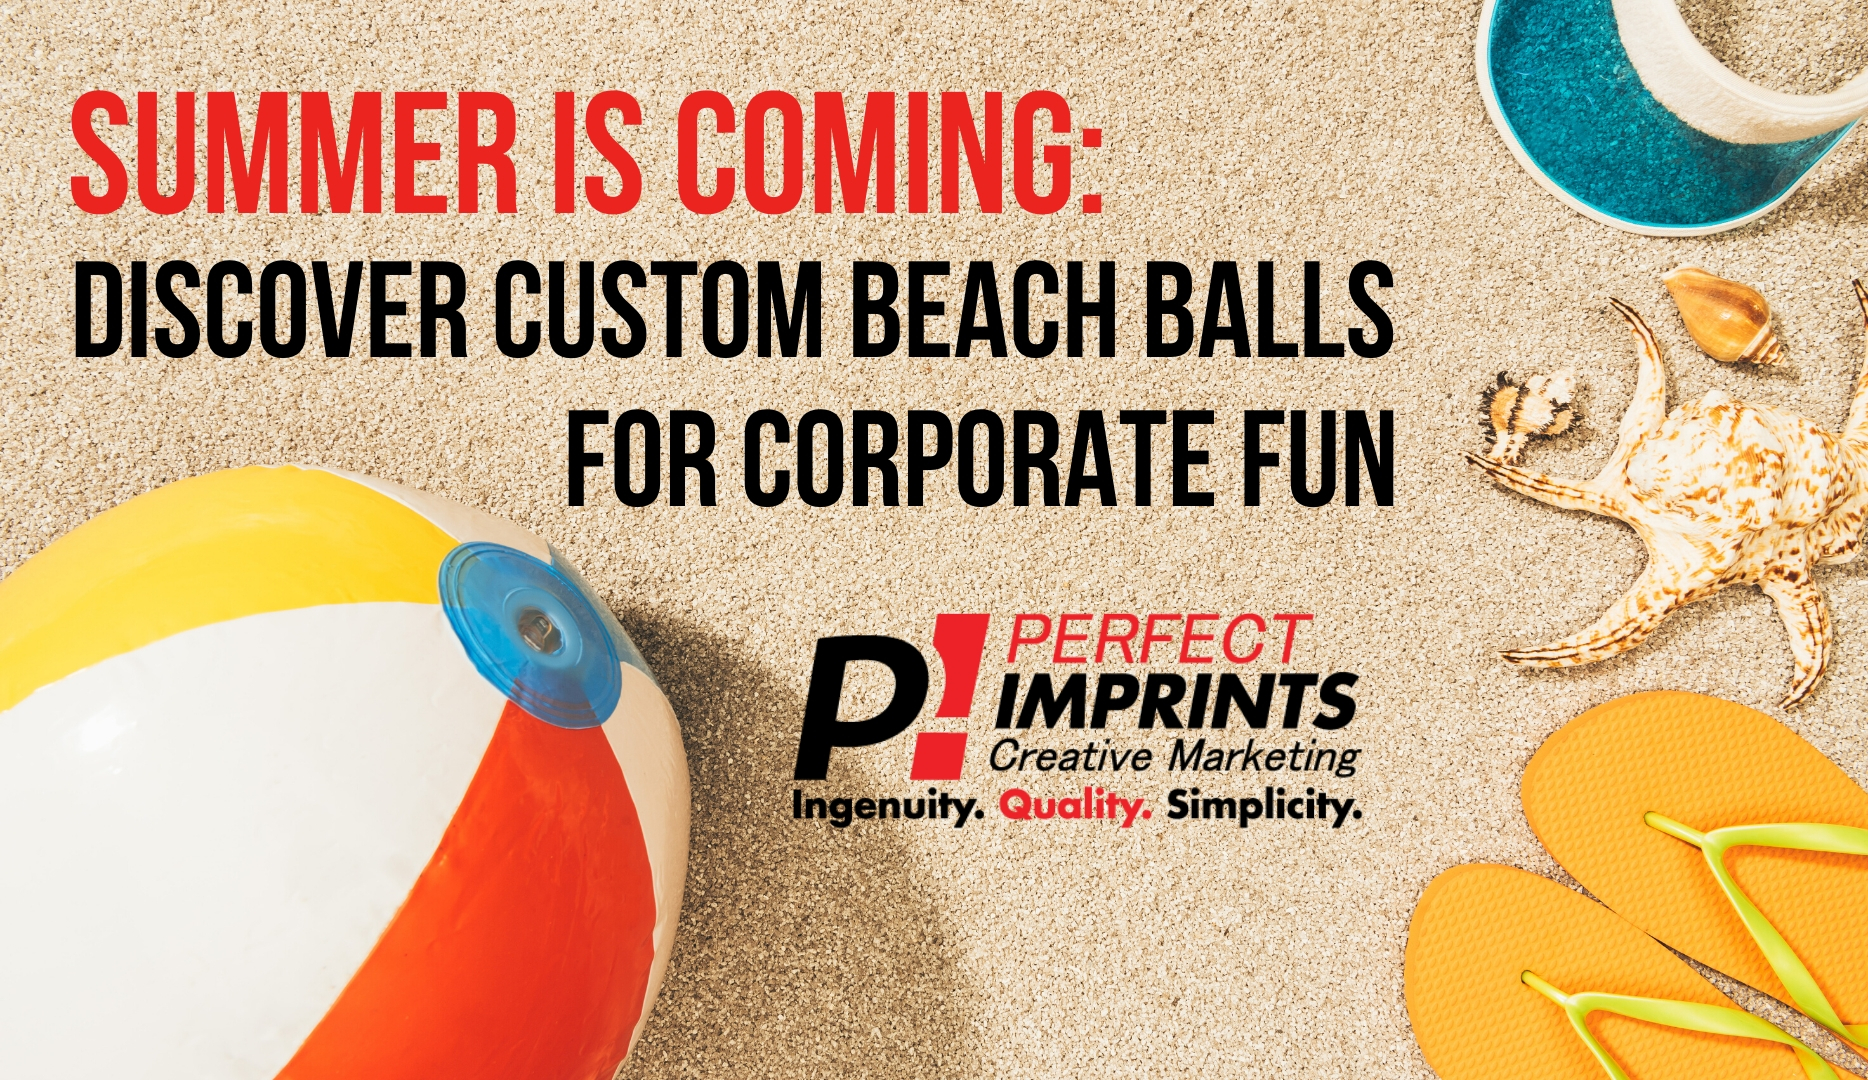 Summer Is Coming: Discover Custom Beach Balls for Corporate Fun